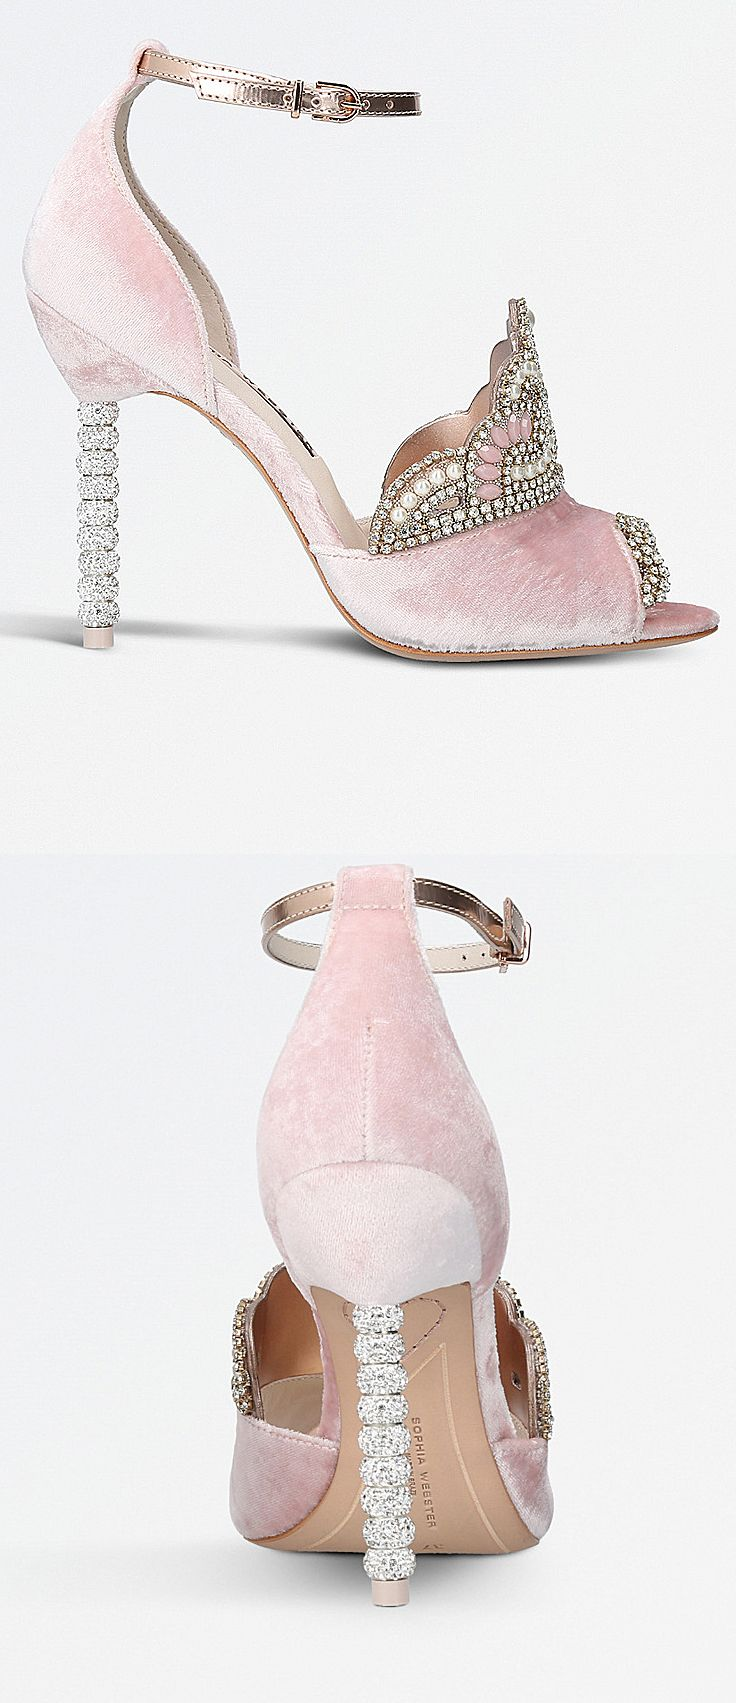 Sophia Webster Royalty embellished tiara-detail velvet sandals. Baby Pink Velvet with a Regal Crown over the Foot Arch. Brand New Season AA17 at Selfridges. Christmas party like a princess. Crystal Party Shoes. #fashion #fashionista #shoefetish #shoeaddict #affiliatelink #couture #christmas #giftsforher